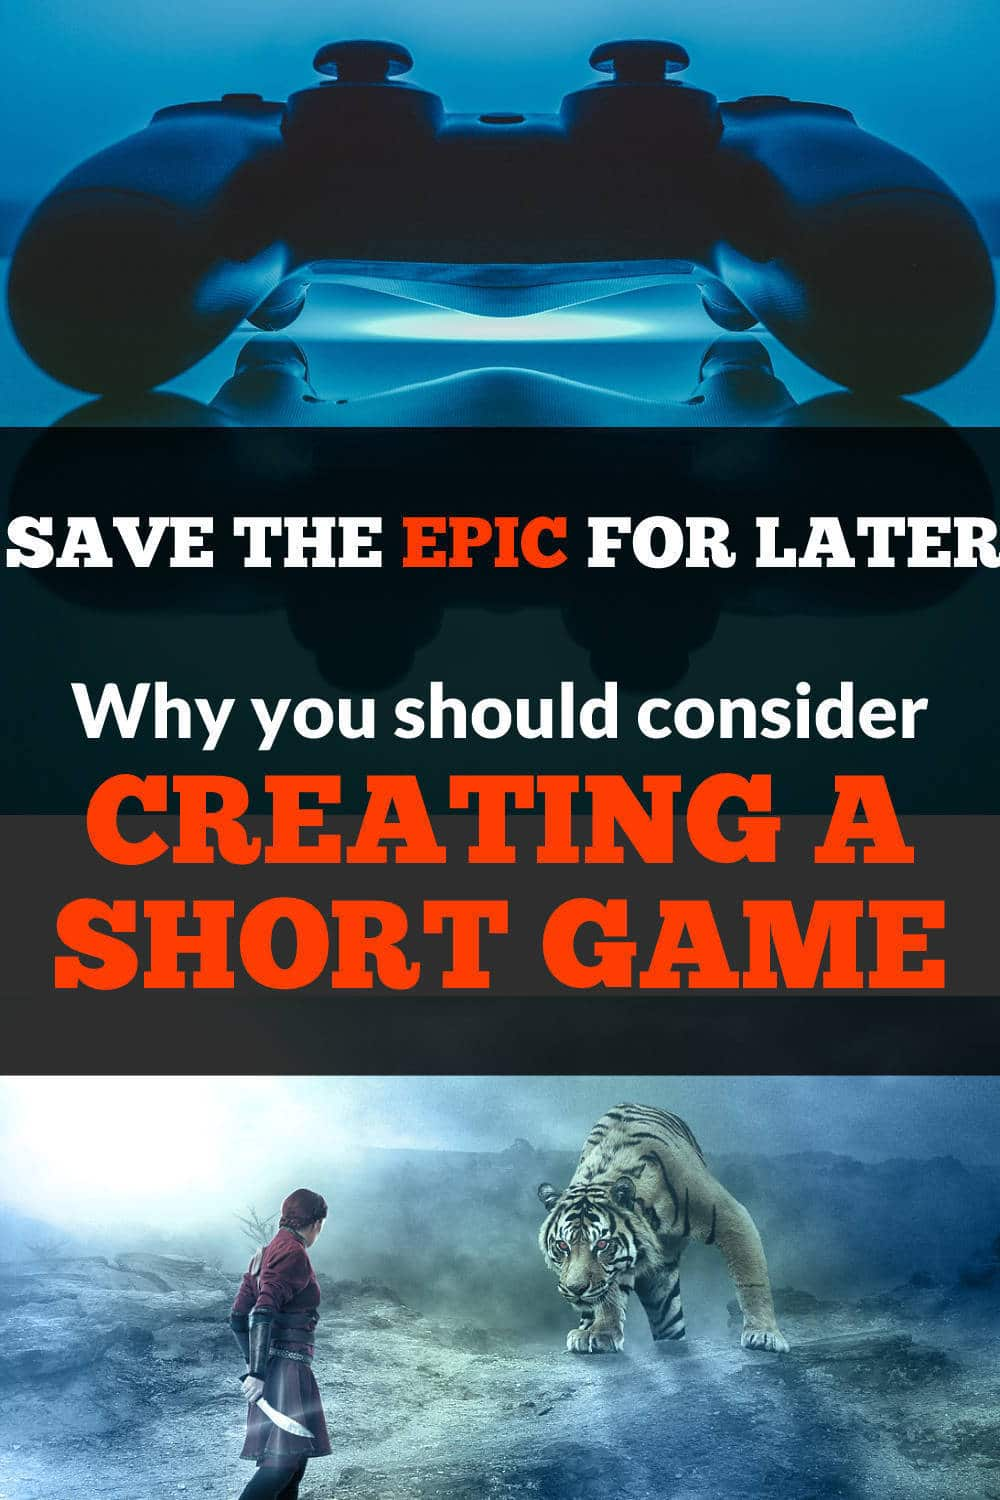 are short games better